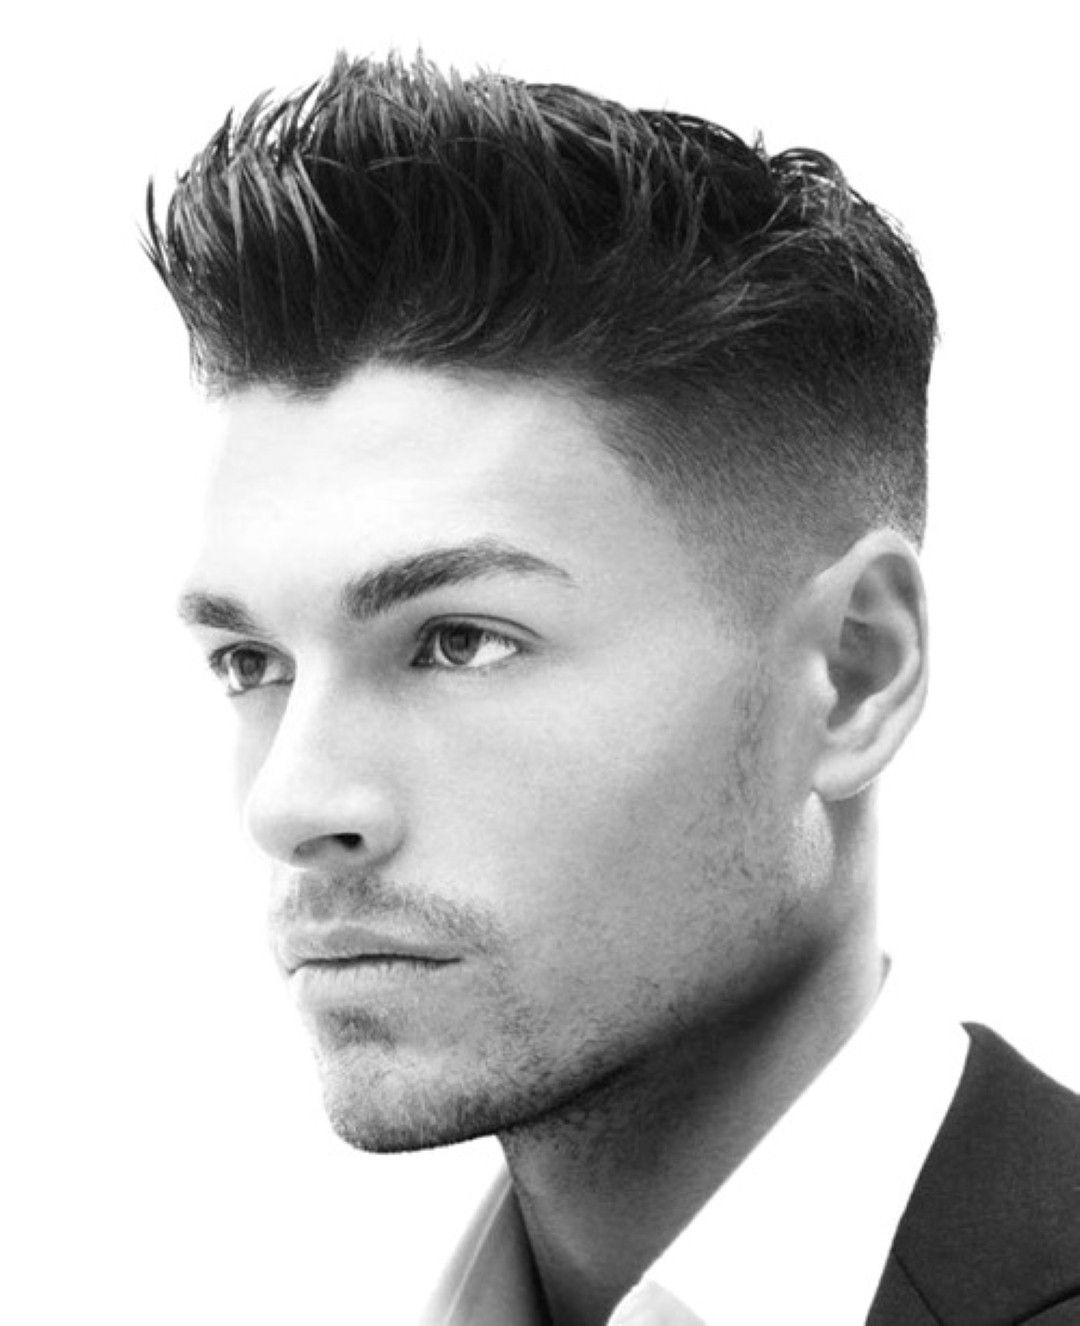 hairstyles for guys in 2015 : simple hairstyle ideas for